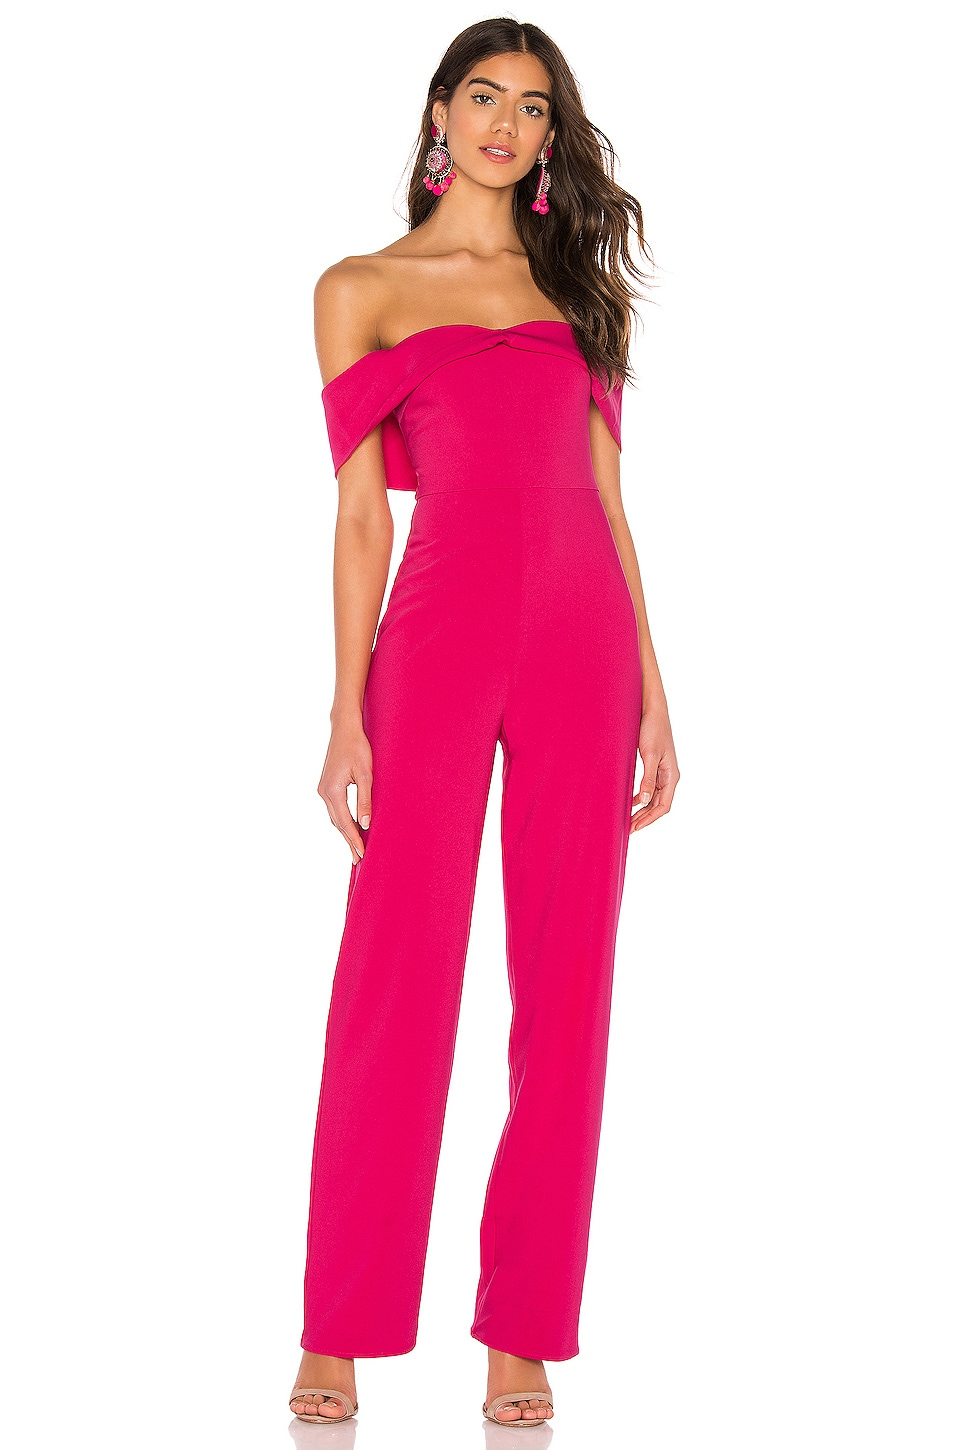 Lovers + Friends Danica Jumpsuit in Pink